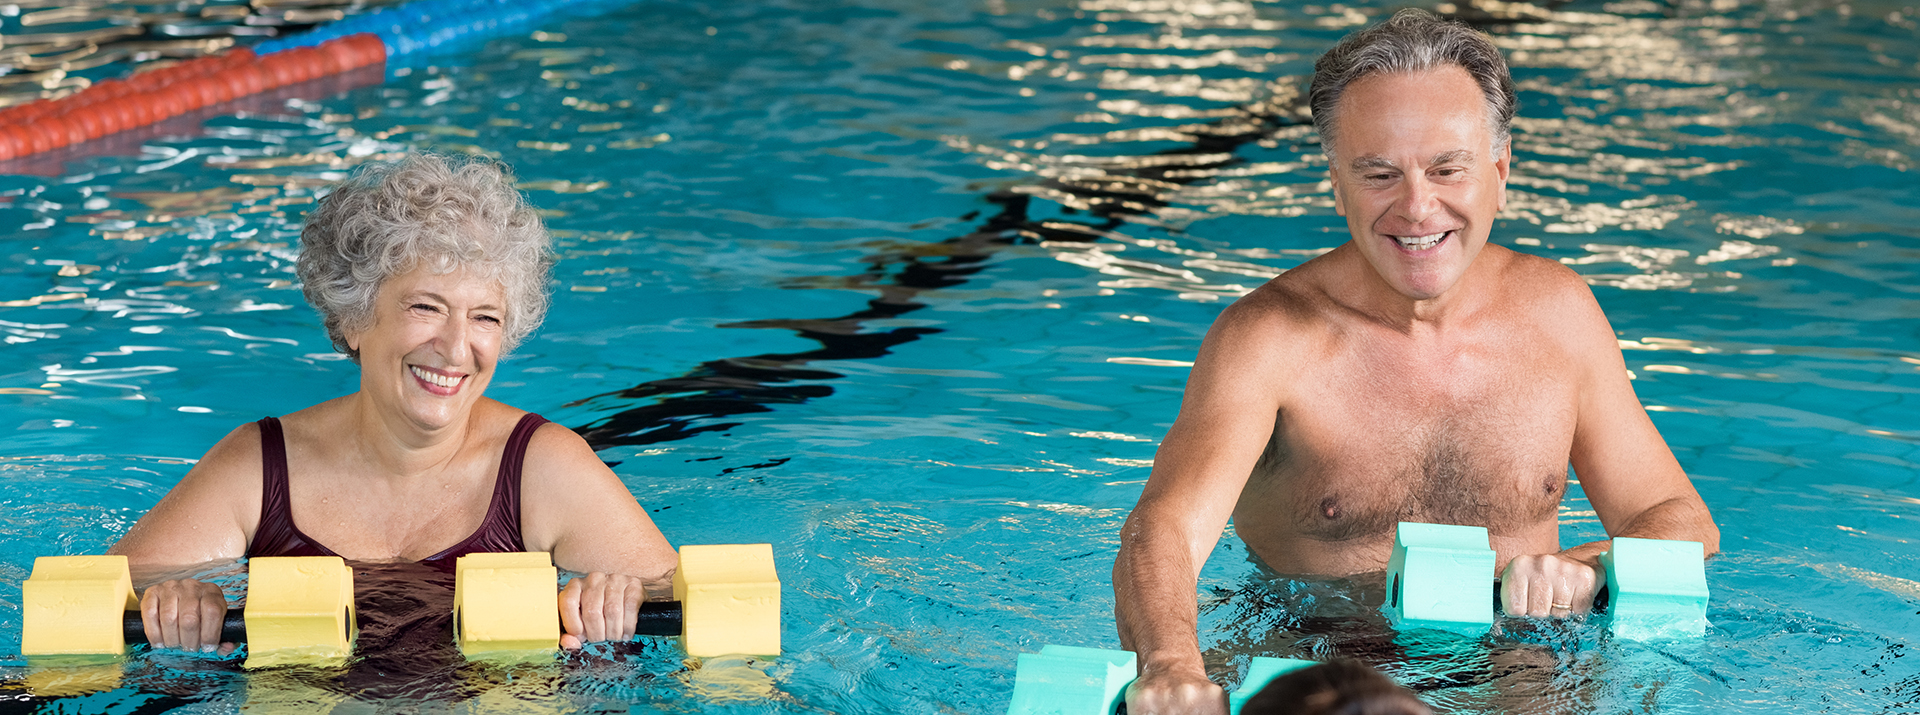 Hydrotherapy or